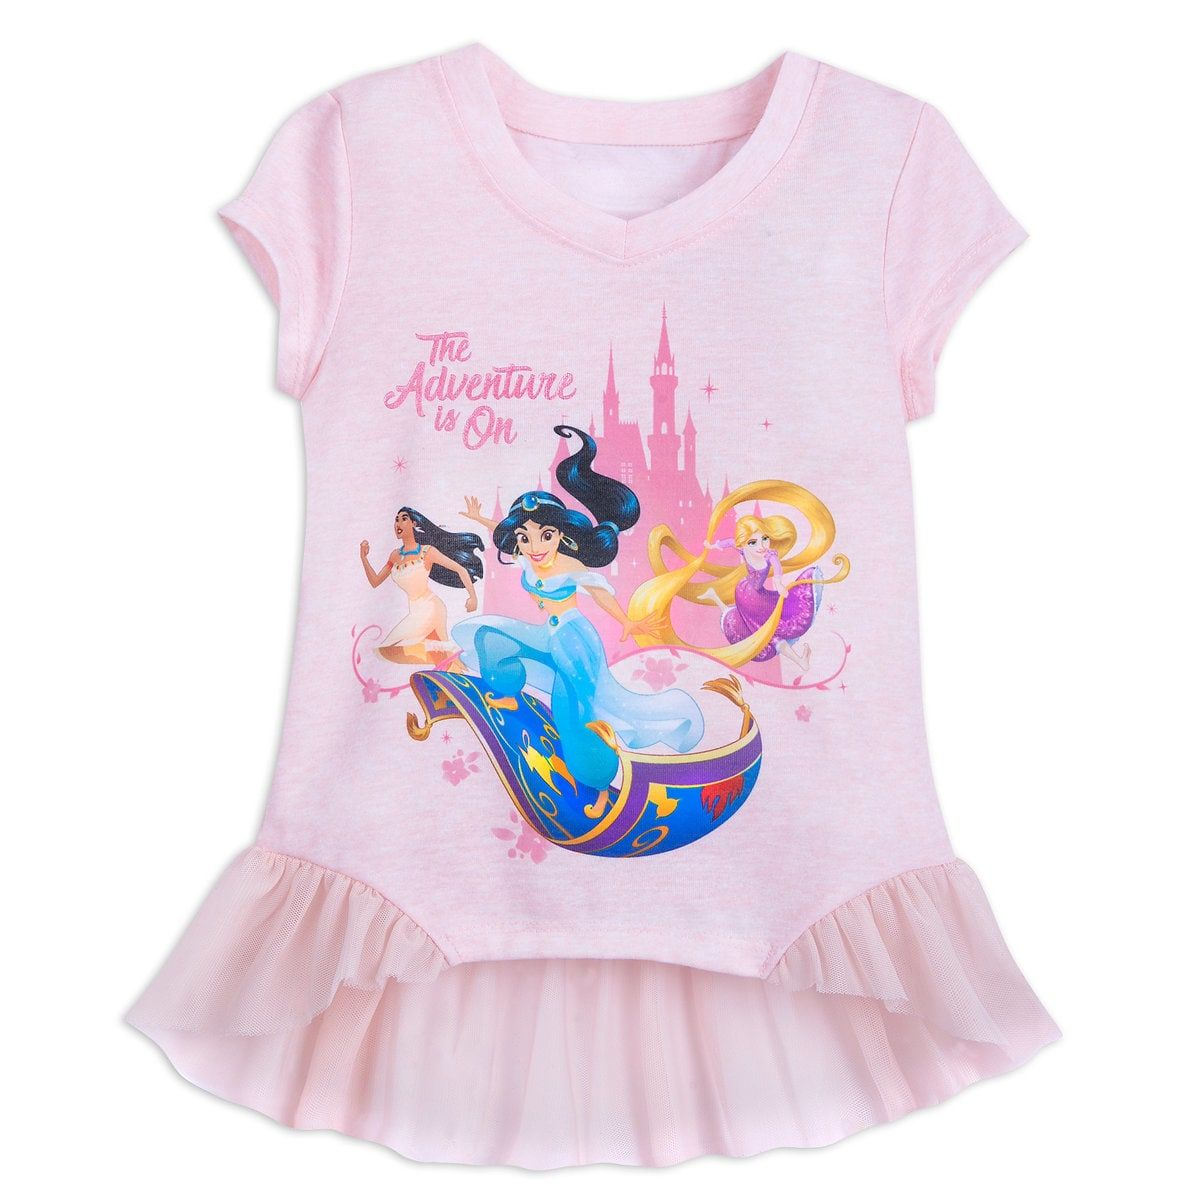 7b348df51d Product Image of Disney Princess Top for Girls - Disneyland - Pink # 1